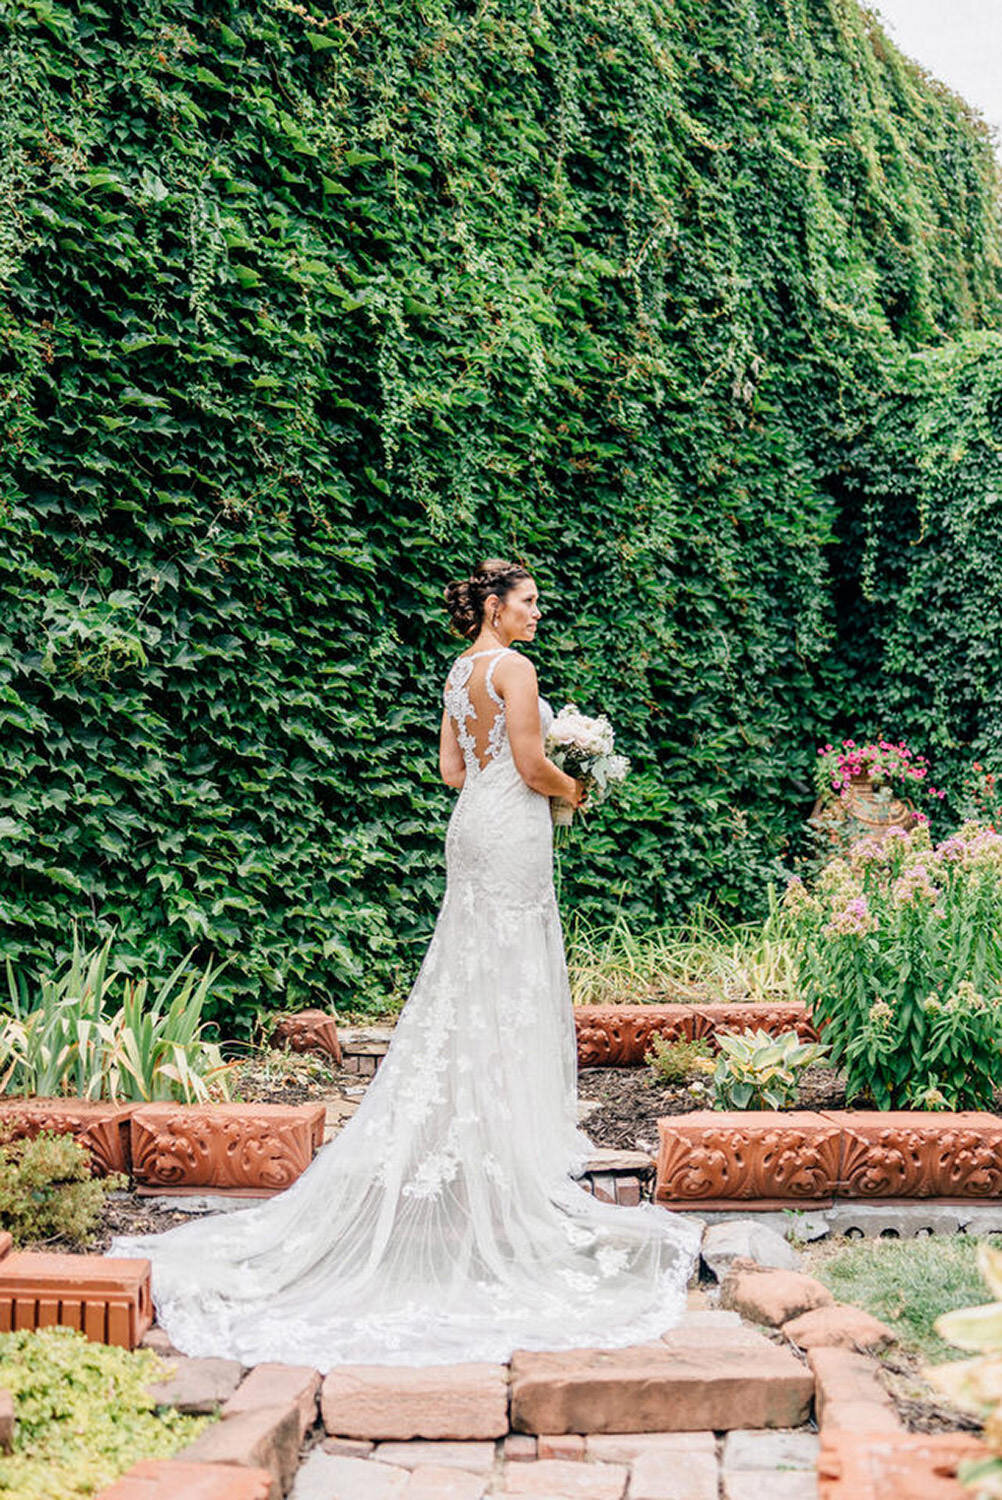 Beautiful bride poses in front of ivy wall in omaha